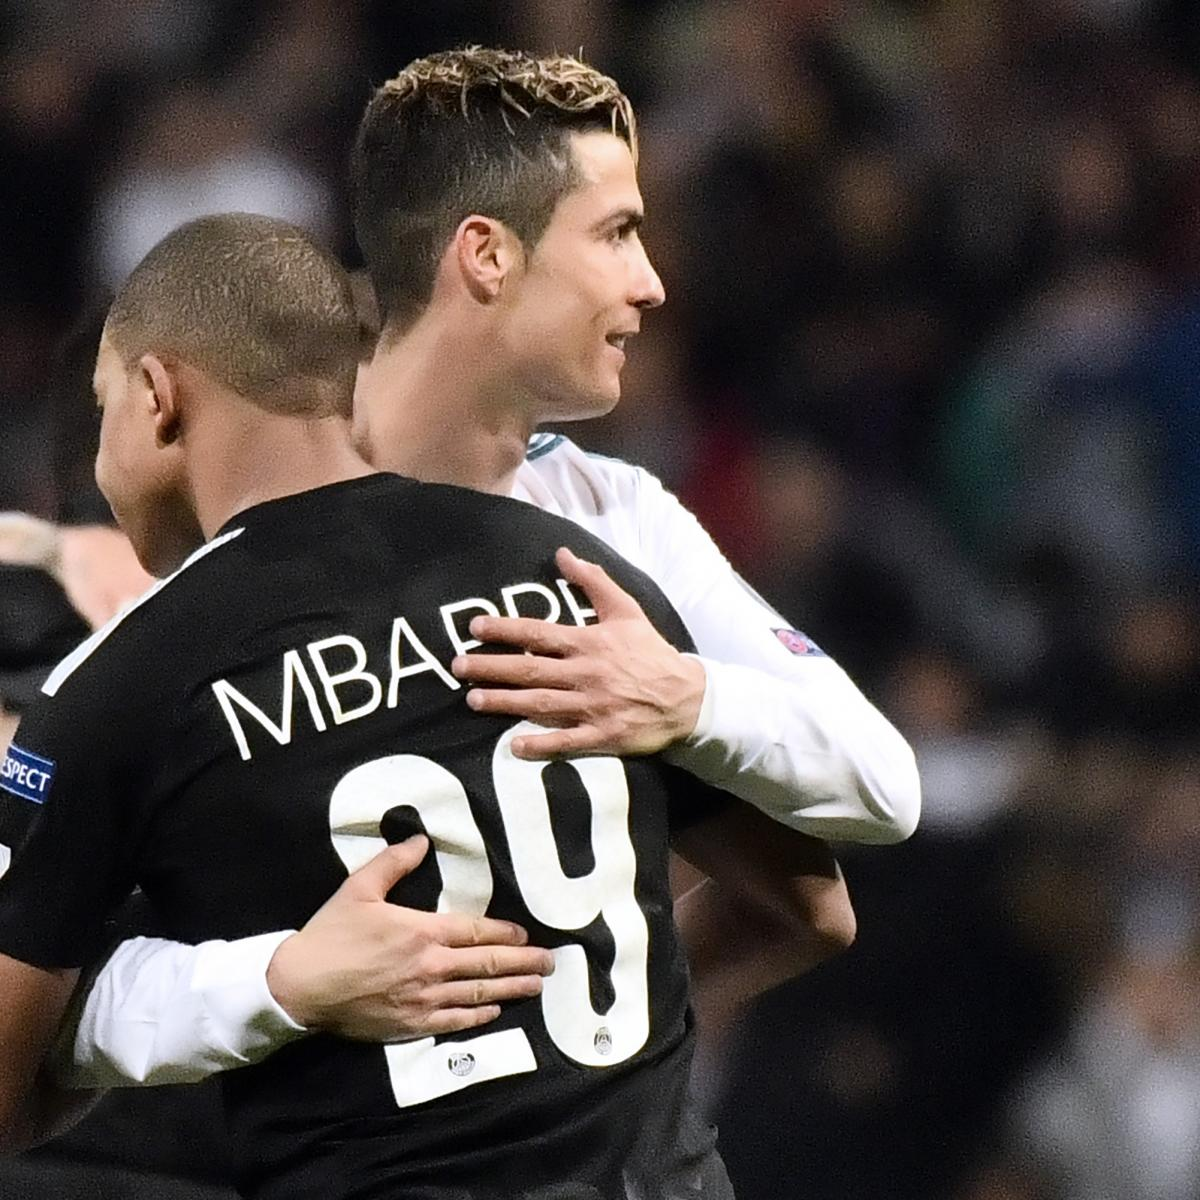 Cristiano Ronaldo Says 'Fantastic' Kylian Mbappe Is 'The Future and the Present'